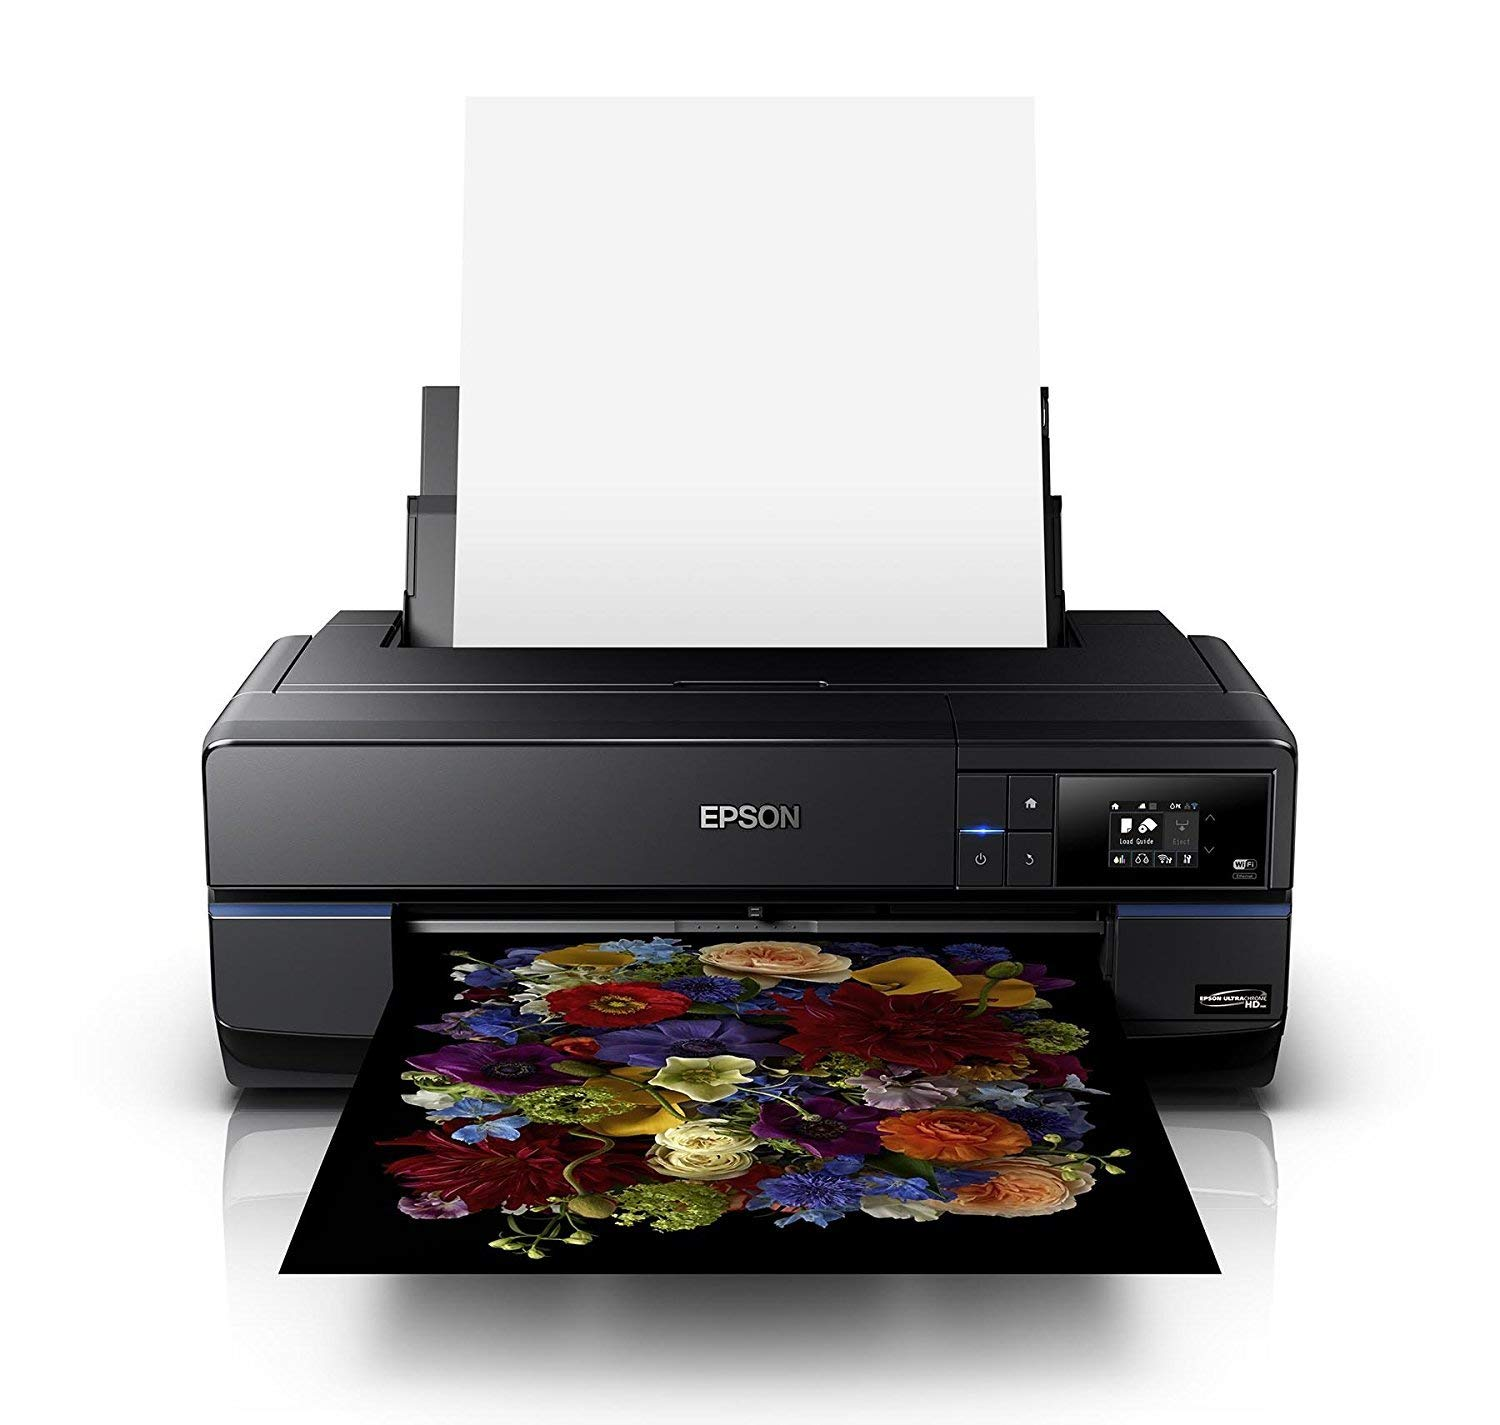 epson performance - The Best Photo Printers of 2019 - FilterGrade